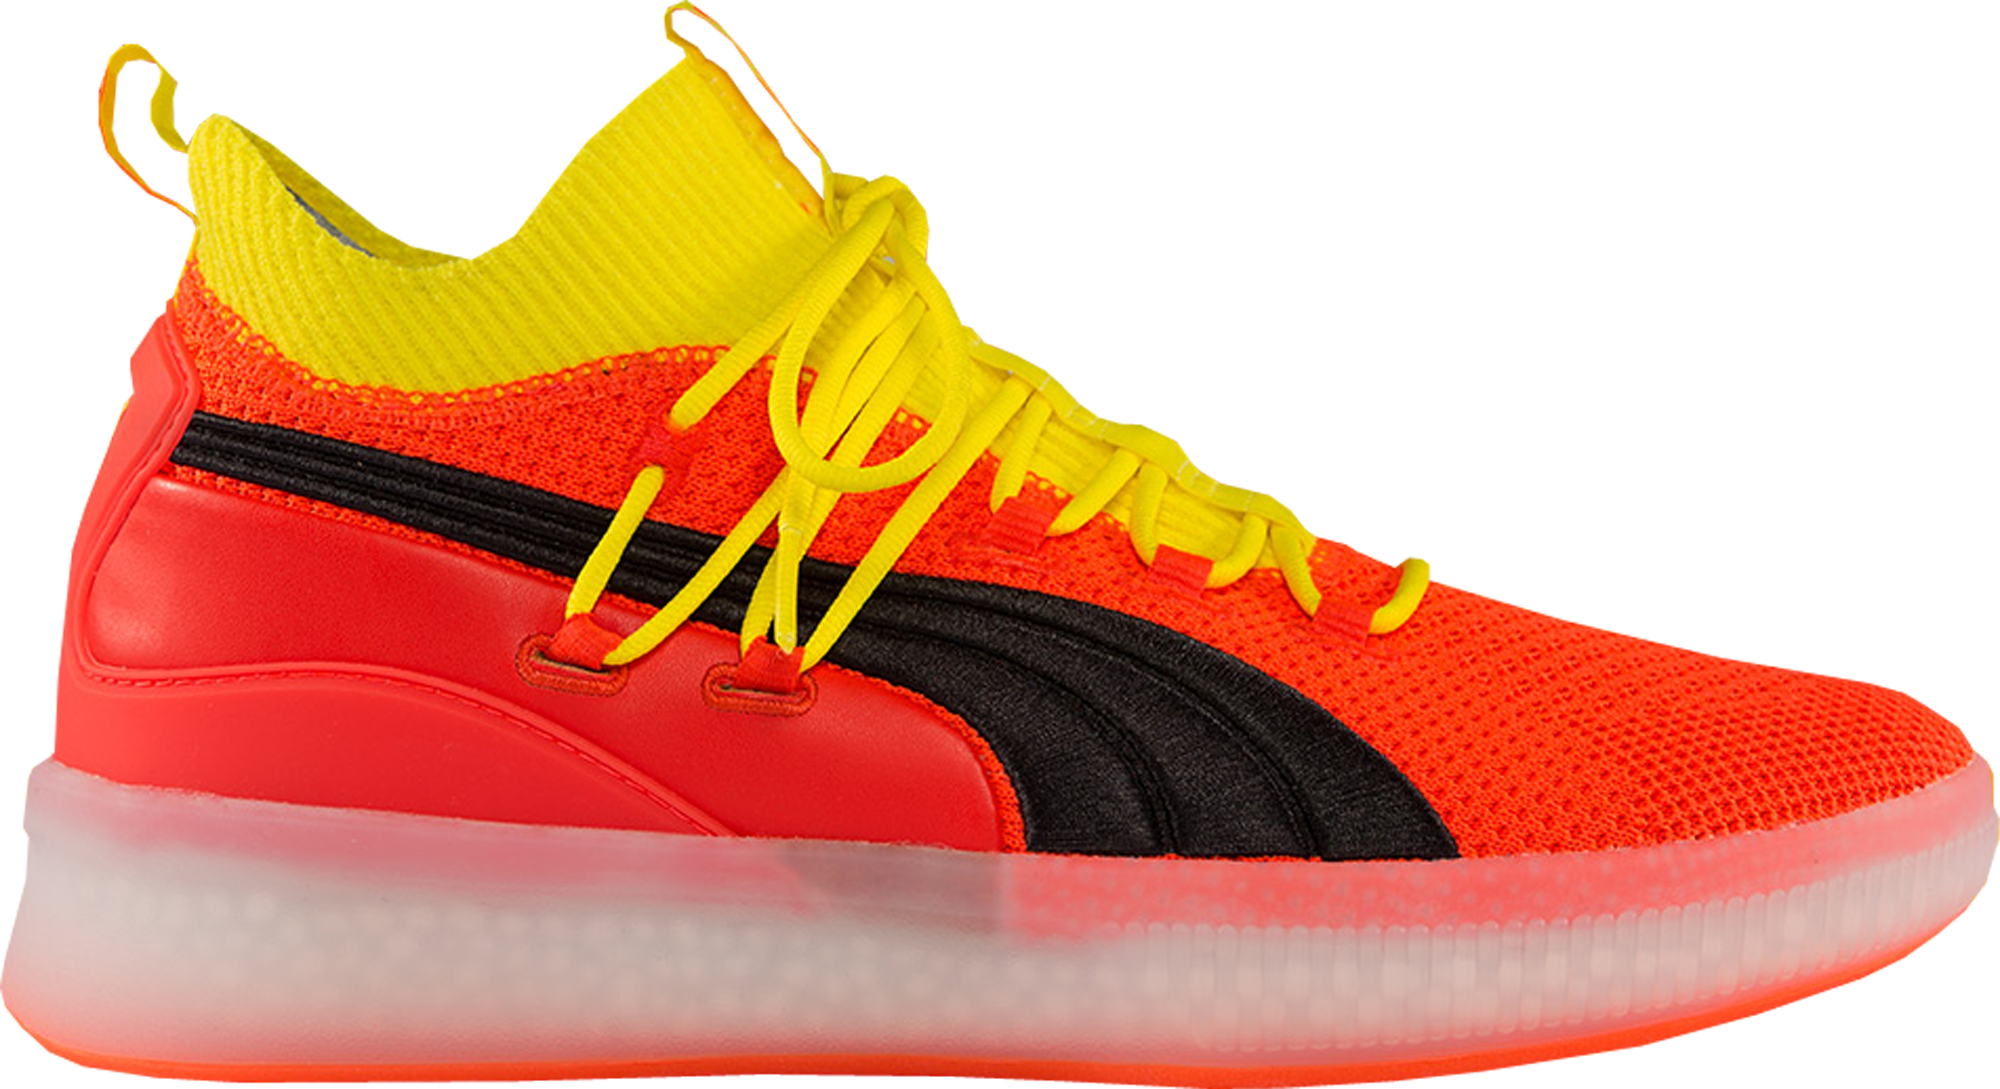 Puma Clyde Court Disrupt Orange Black Yellow